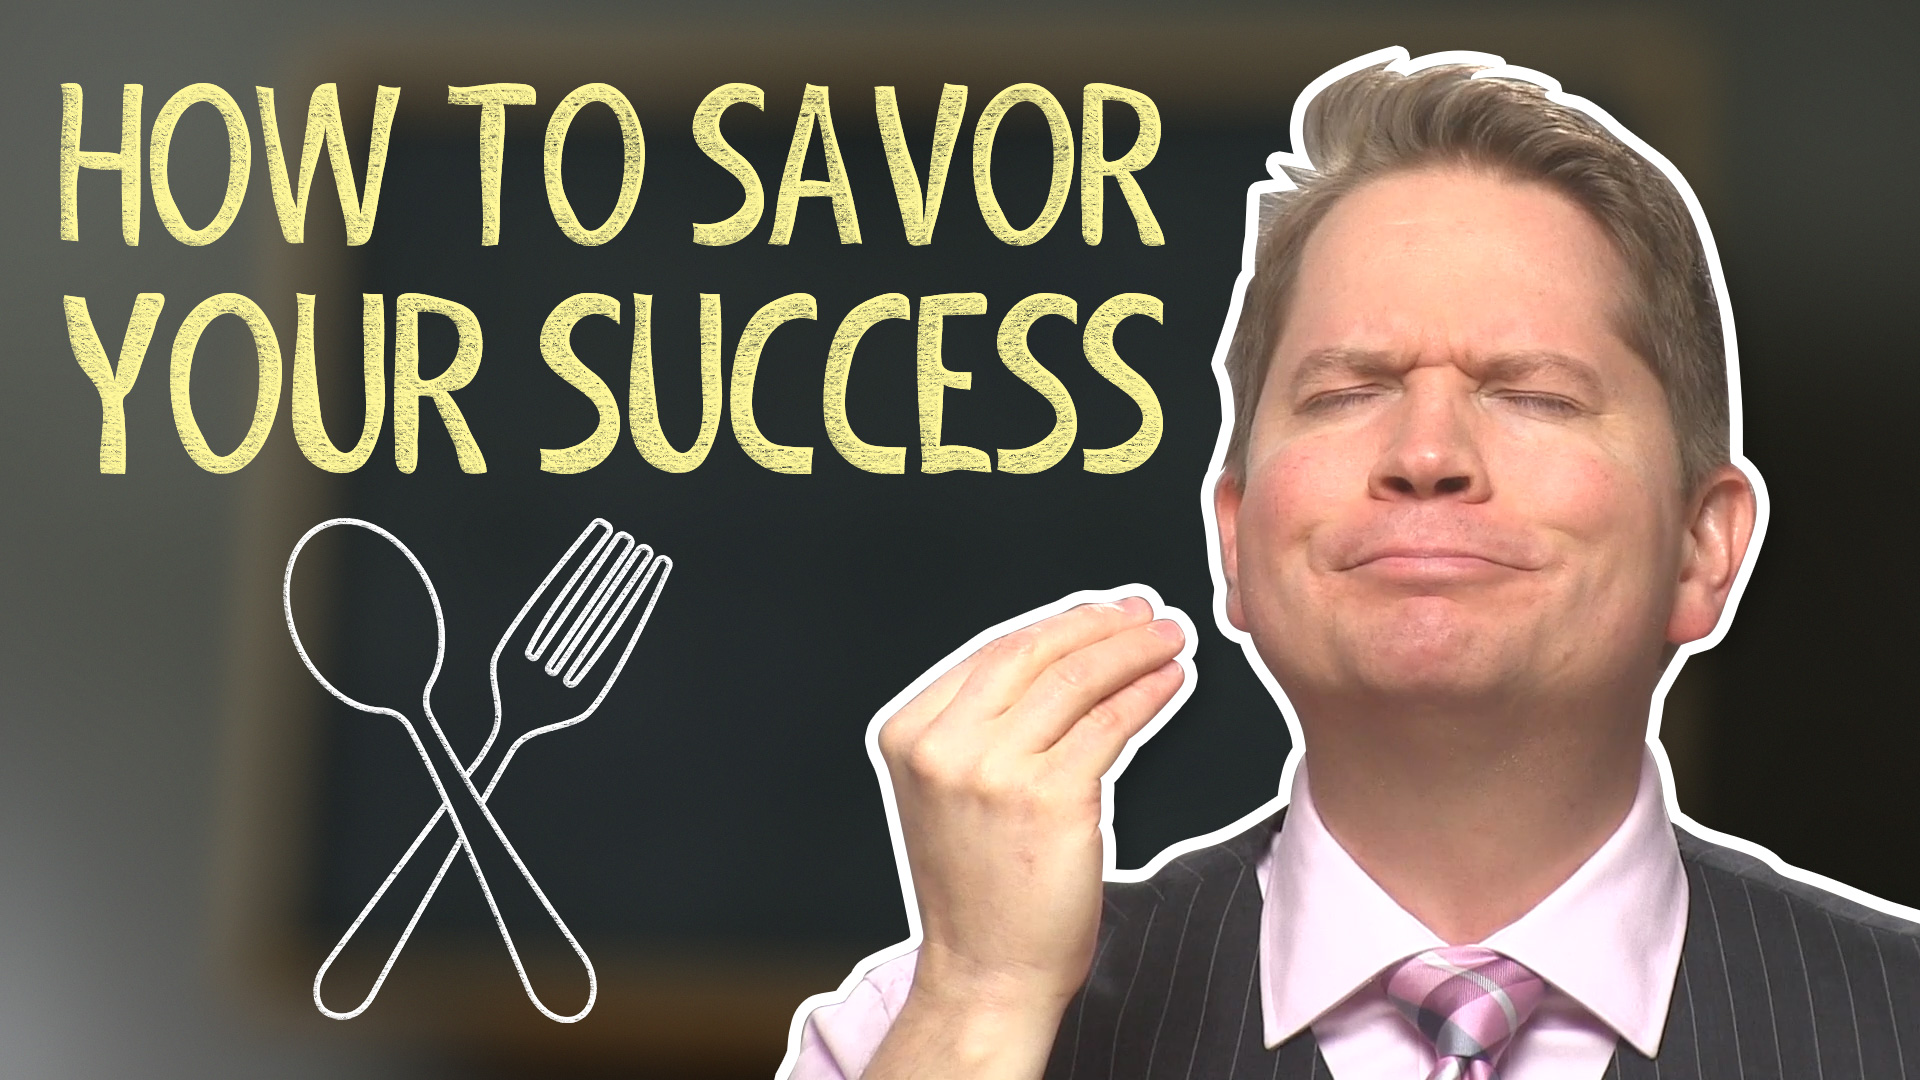 How to Savor Your Success